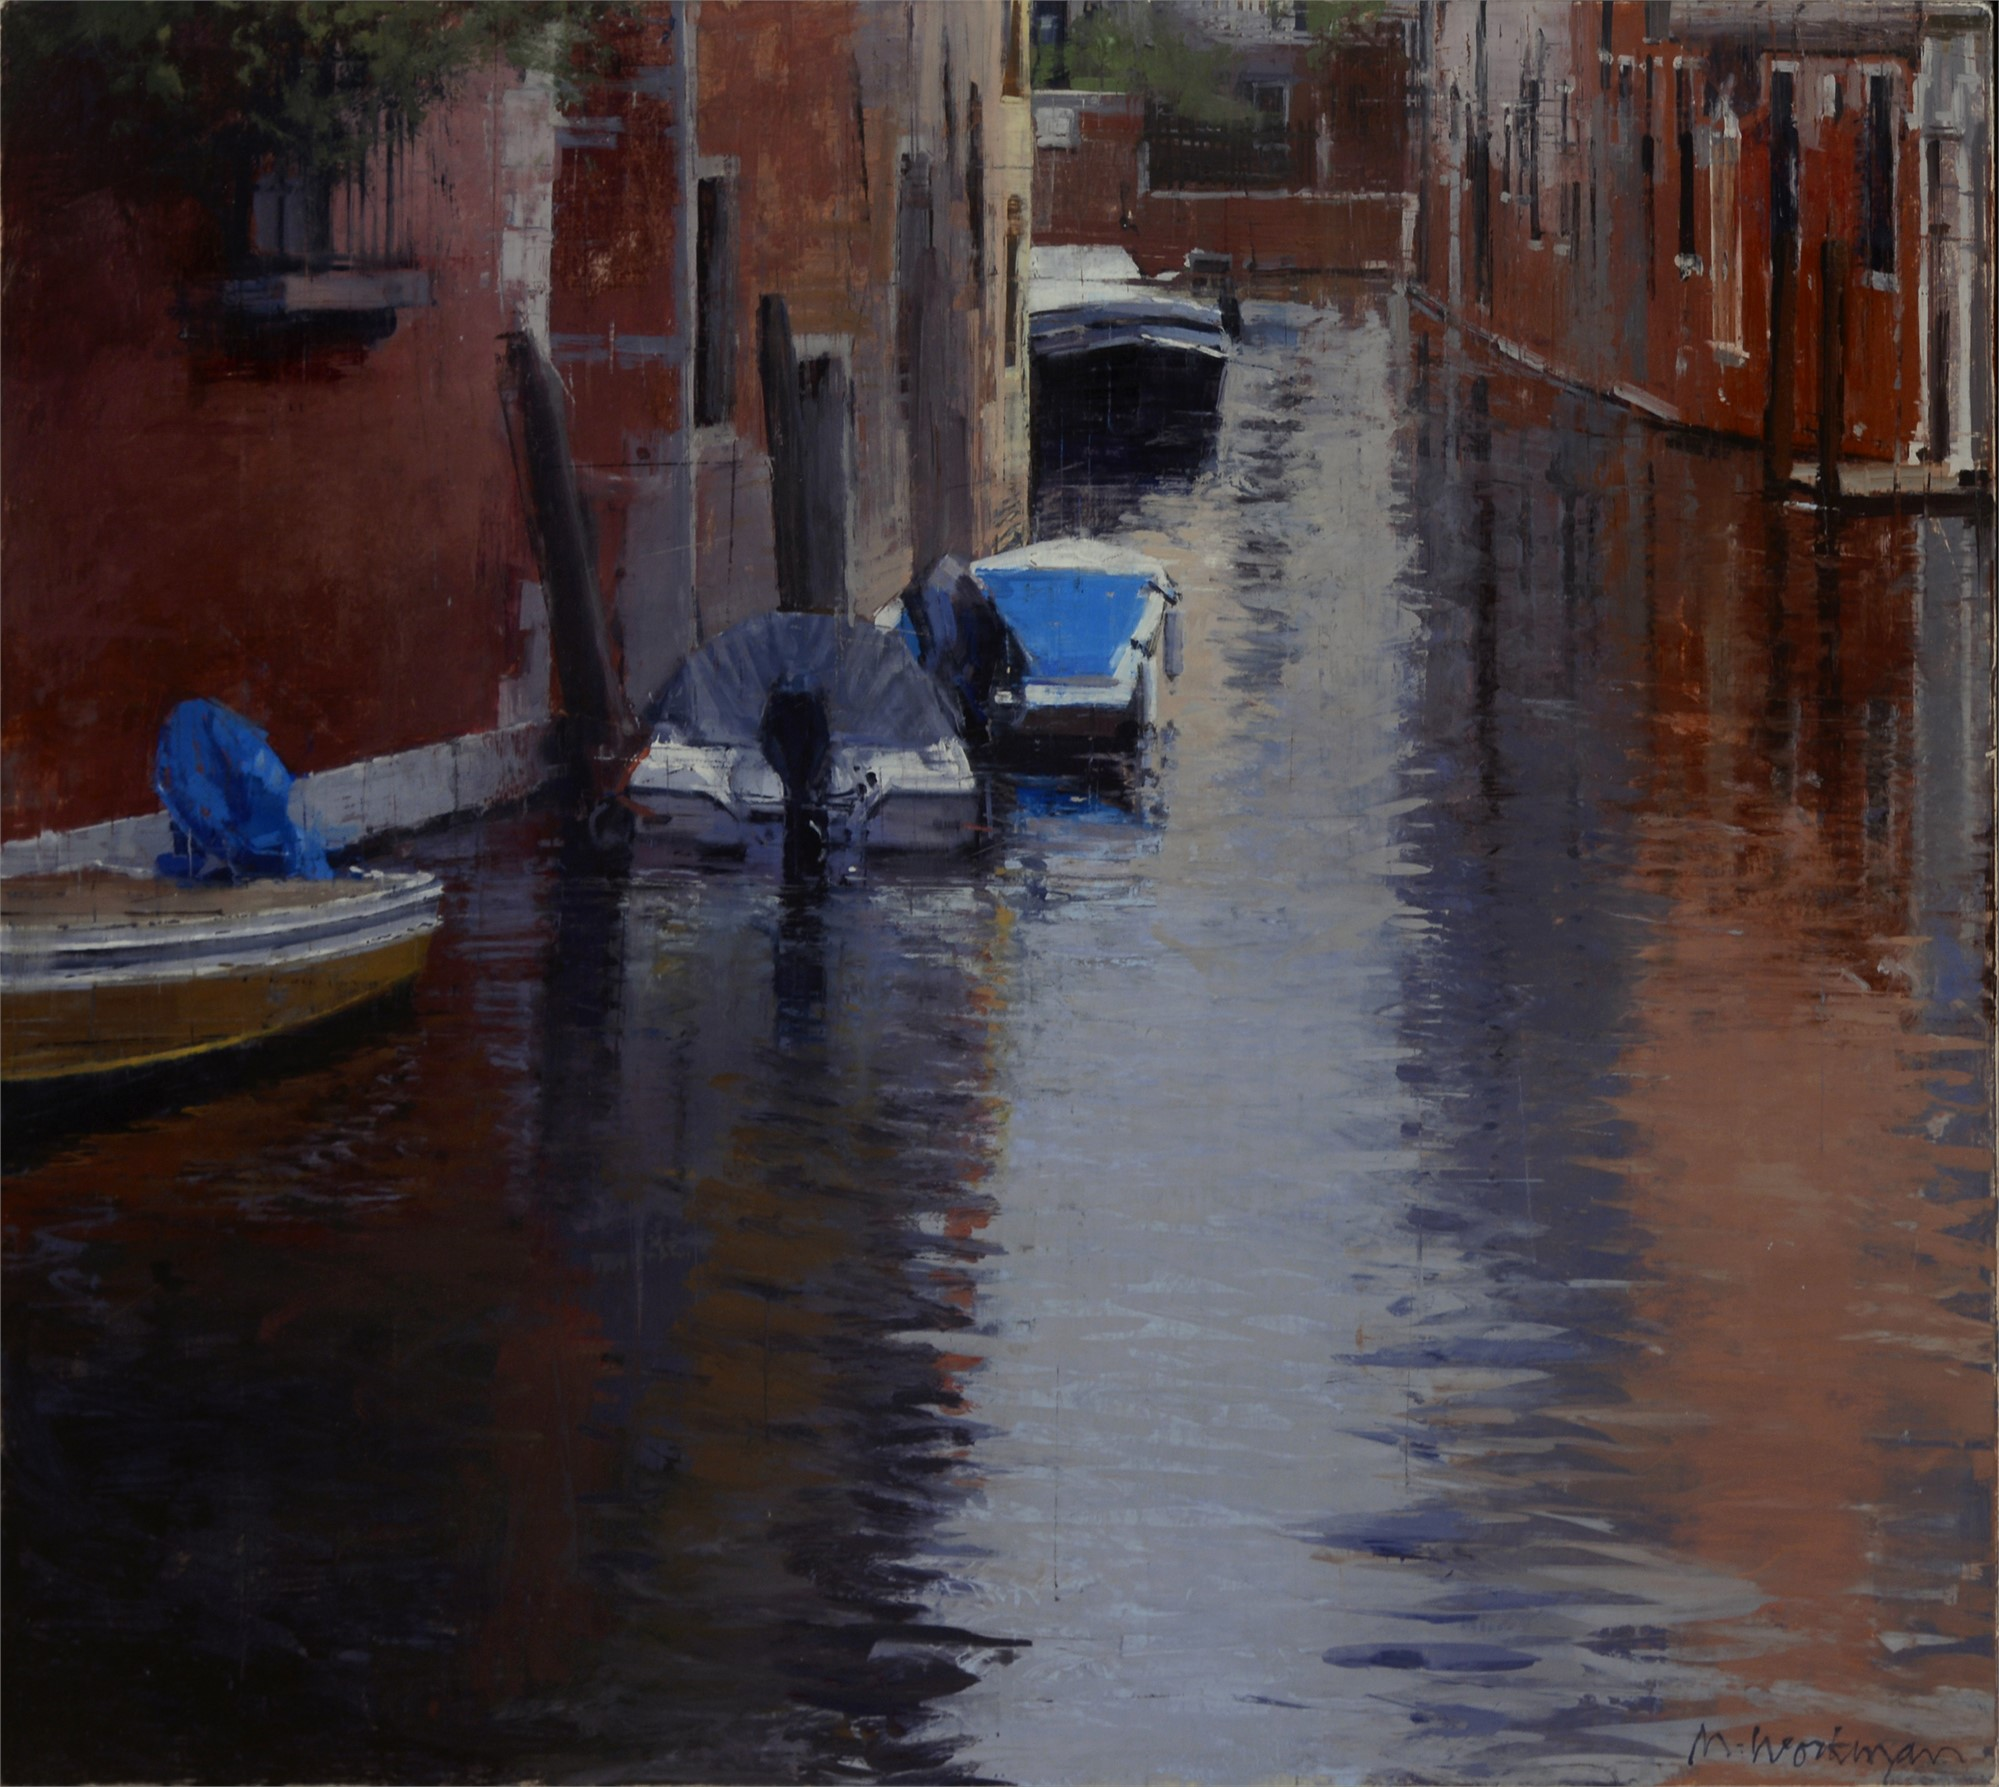 Venice with Rain 1 by Michael Workman